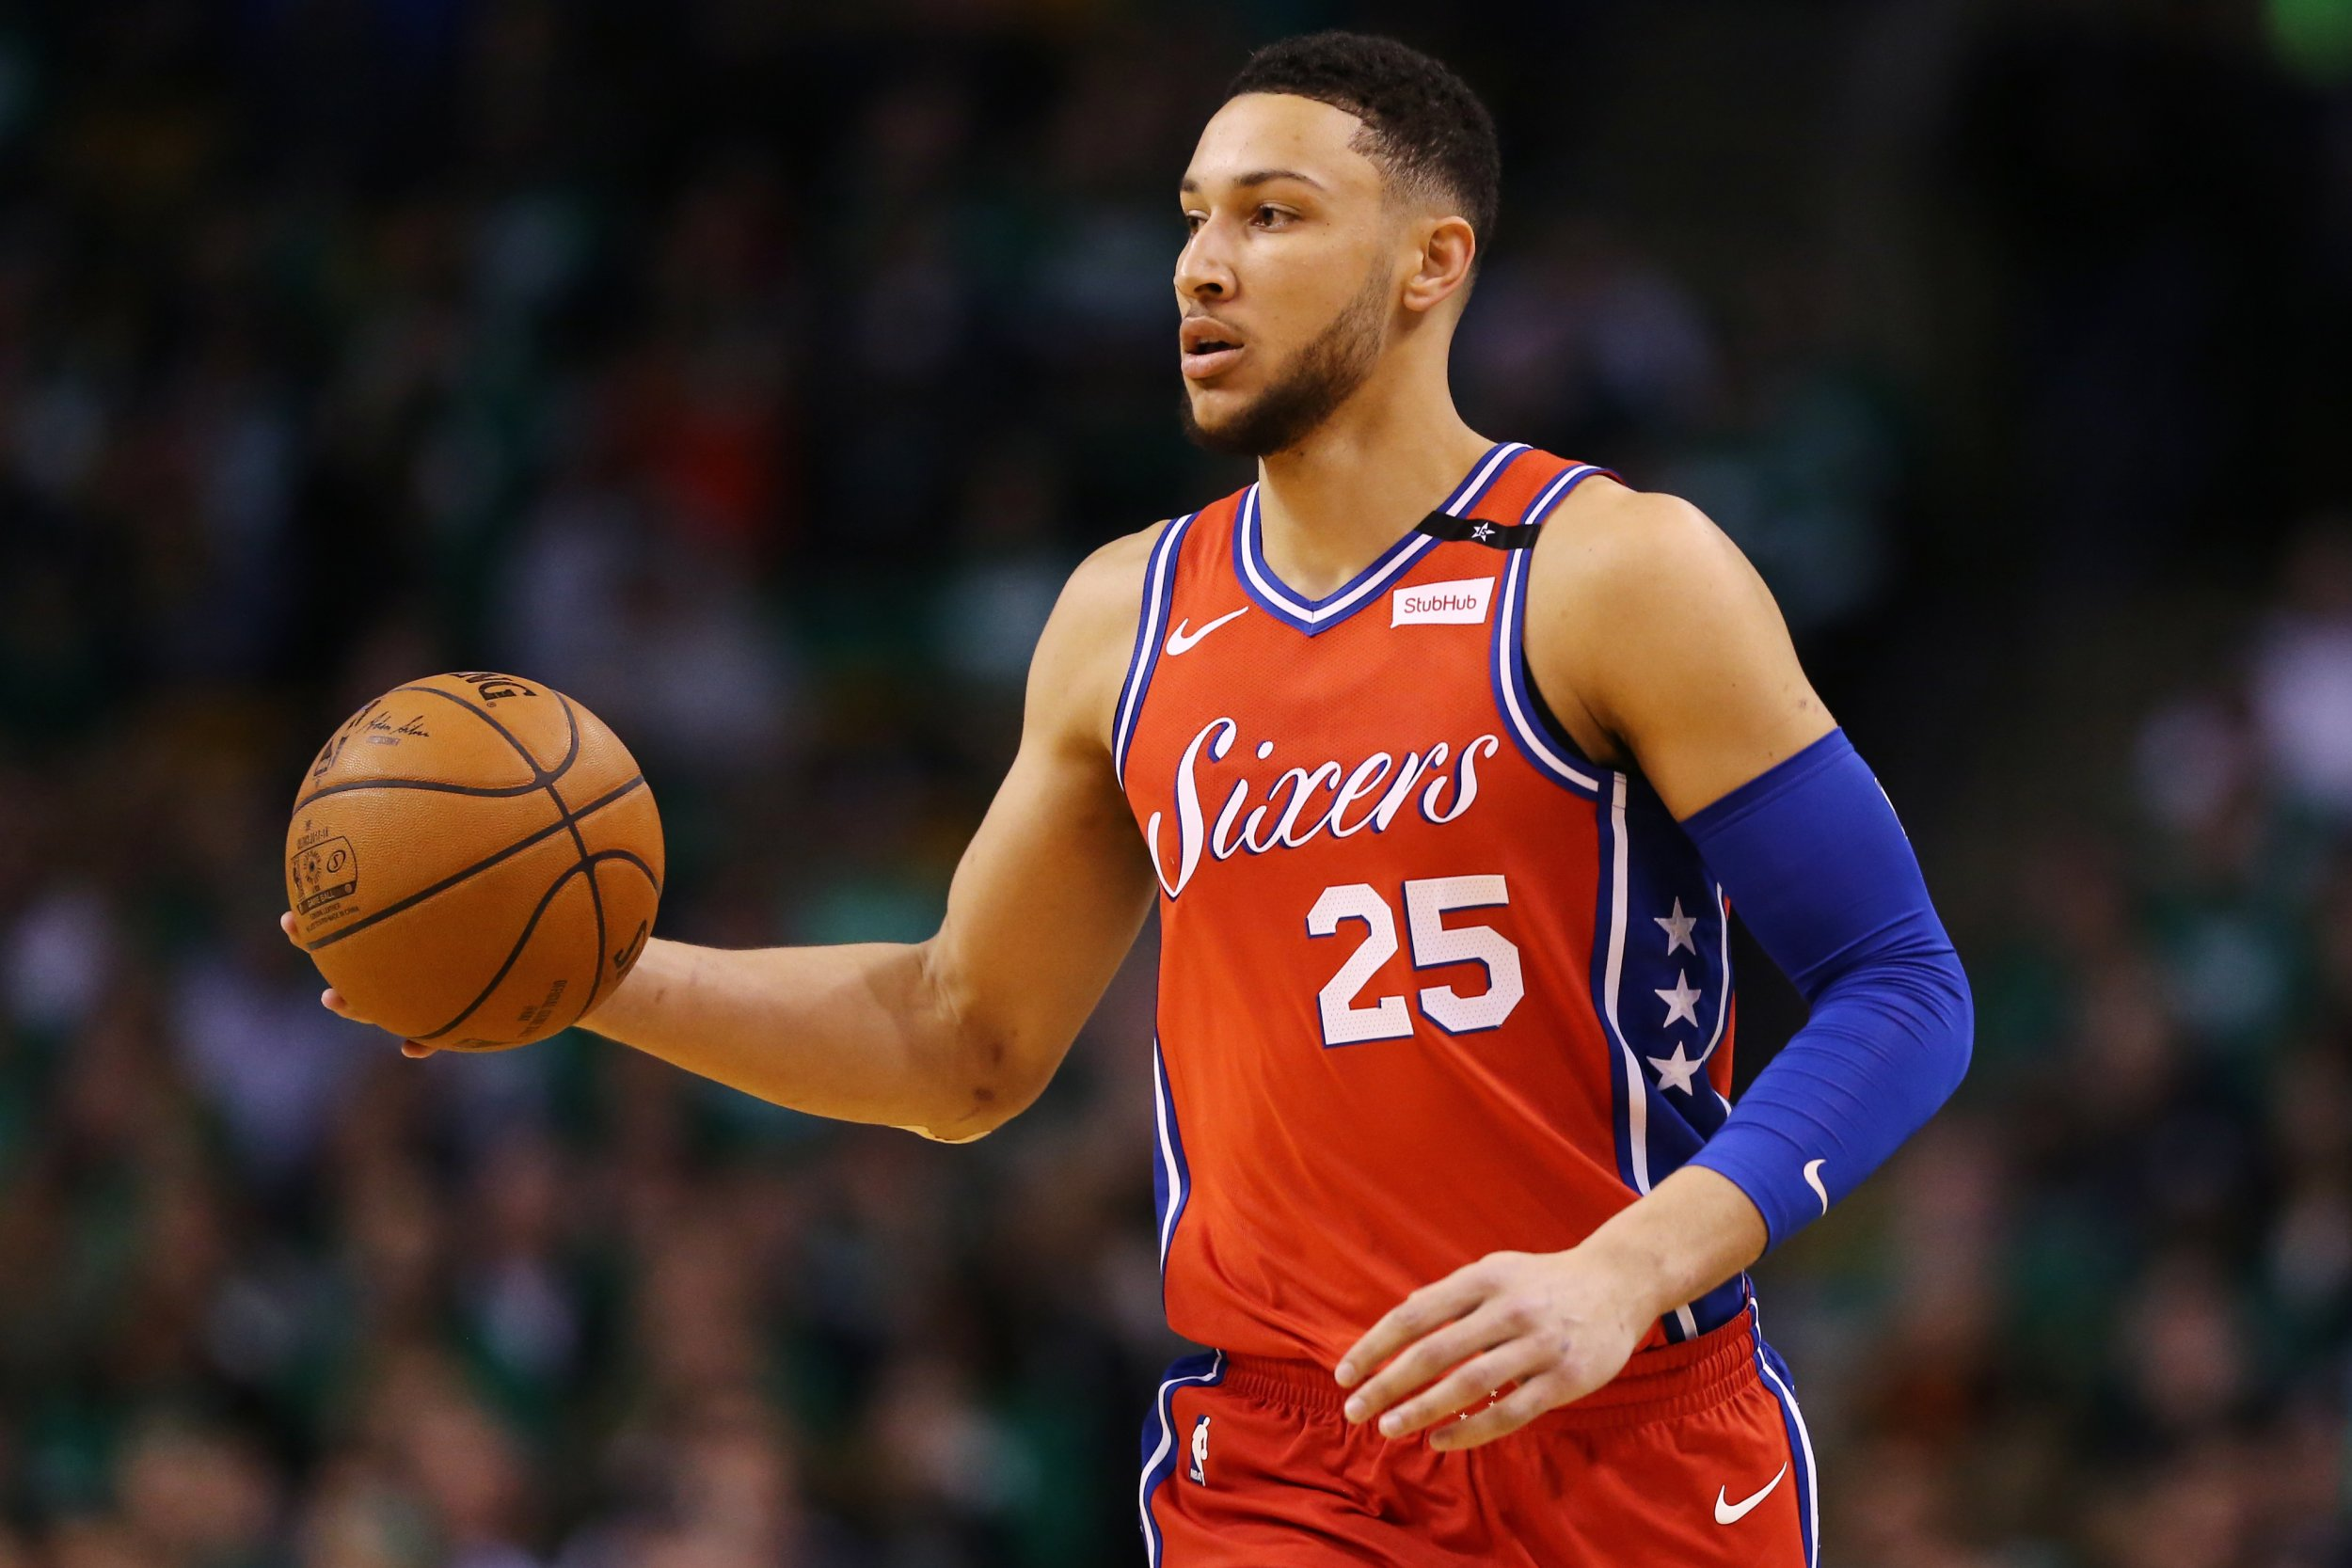 Ben Simmons: Celtics Fans Trolled Ben Simmons And Donovan Mitchell Loved It